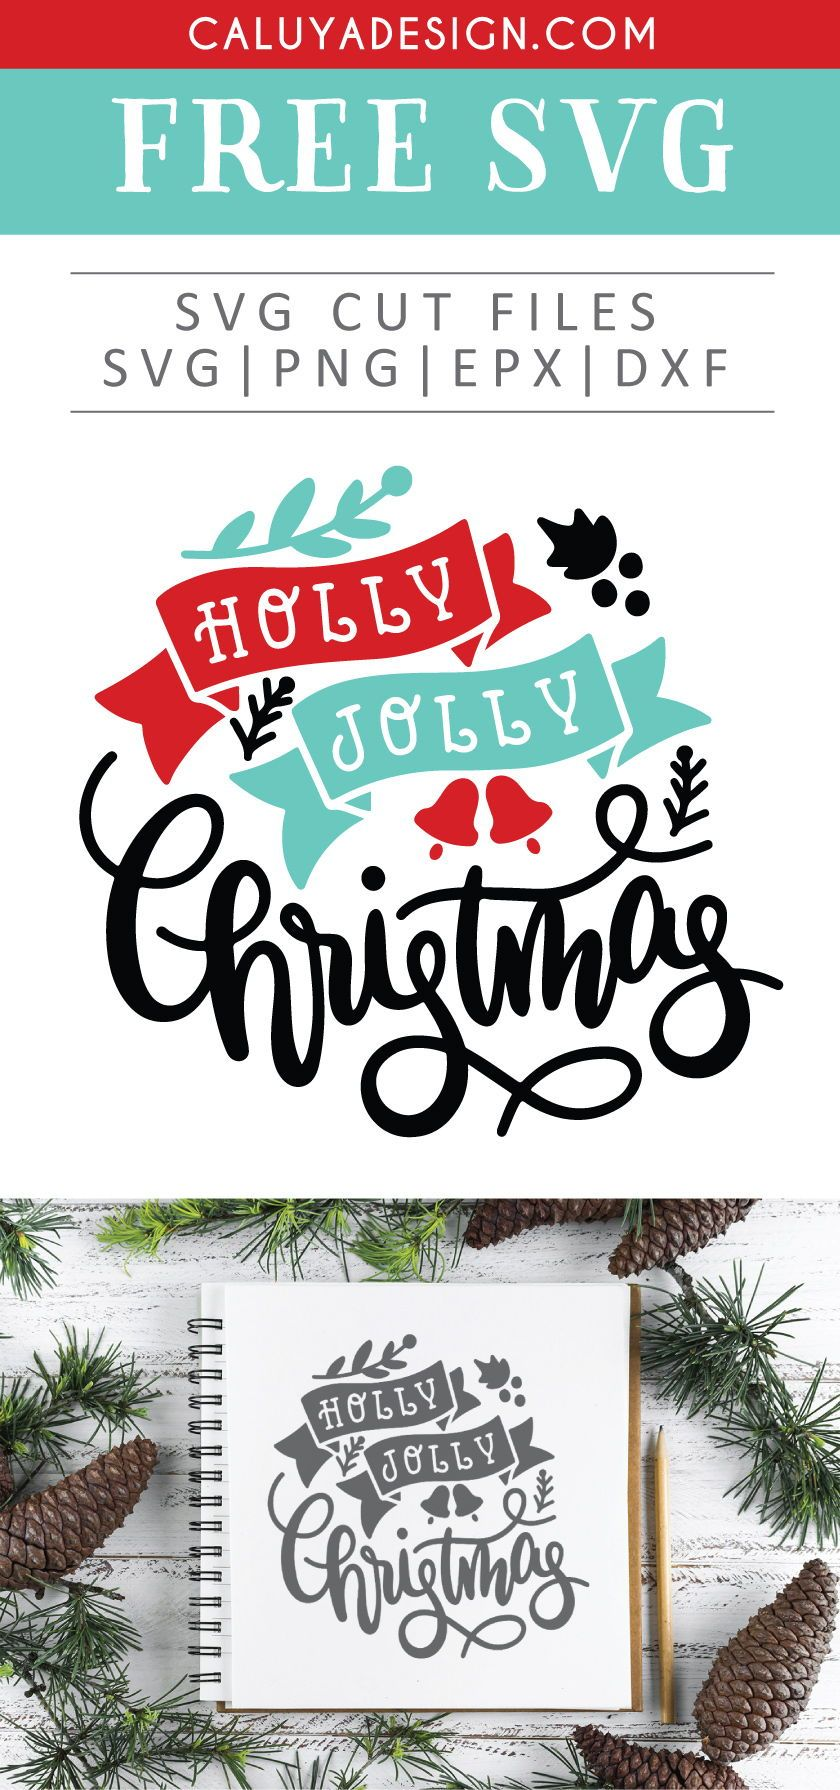 Free Holly Jolly Christmas SVG, PNG, EPS & DXF Christmas